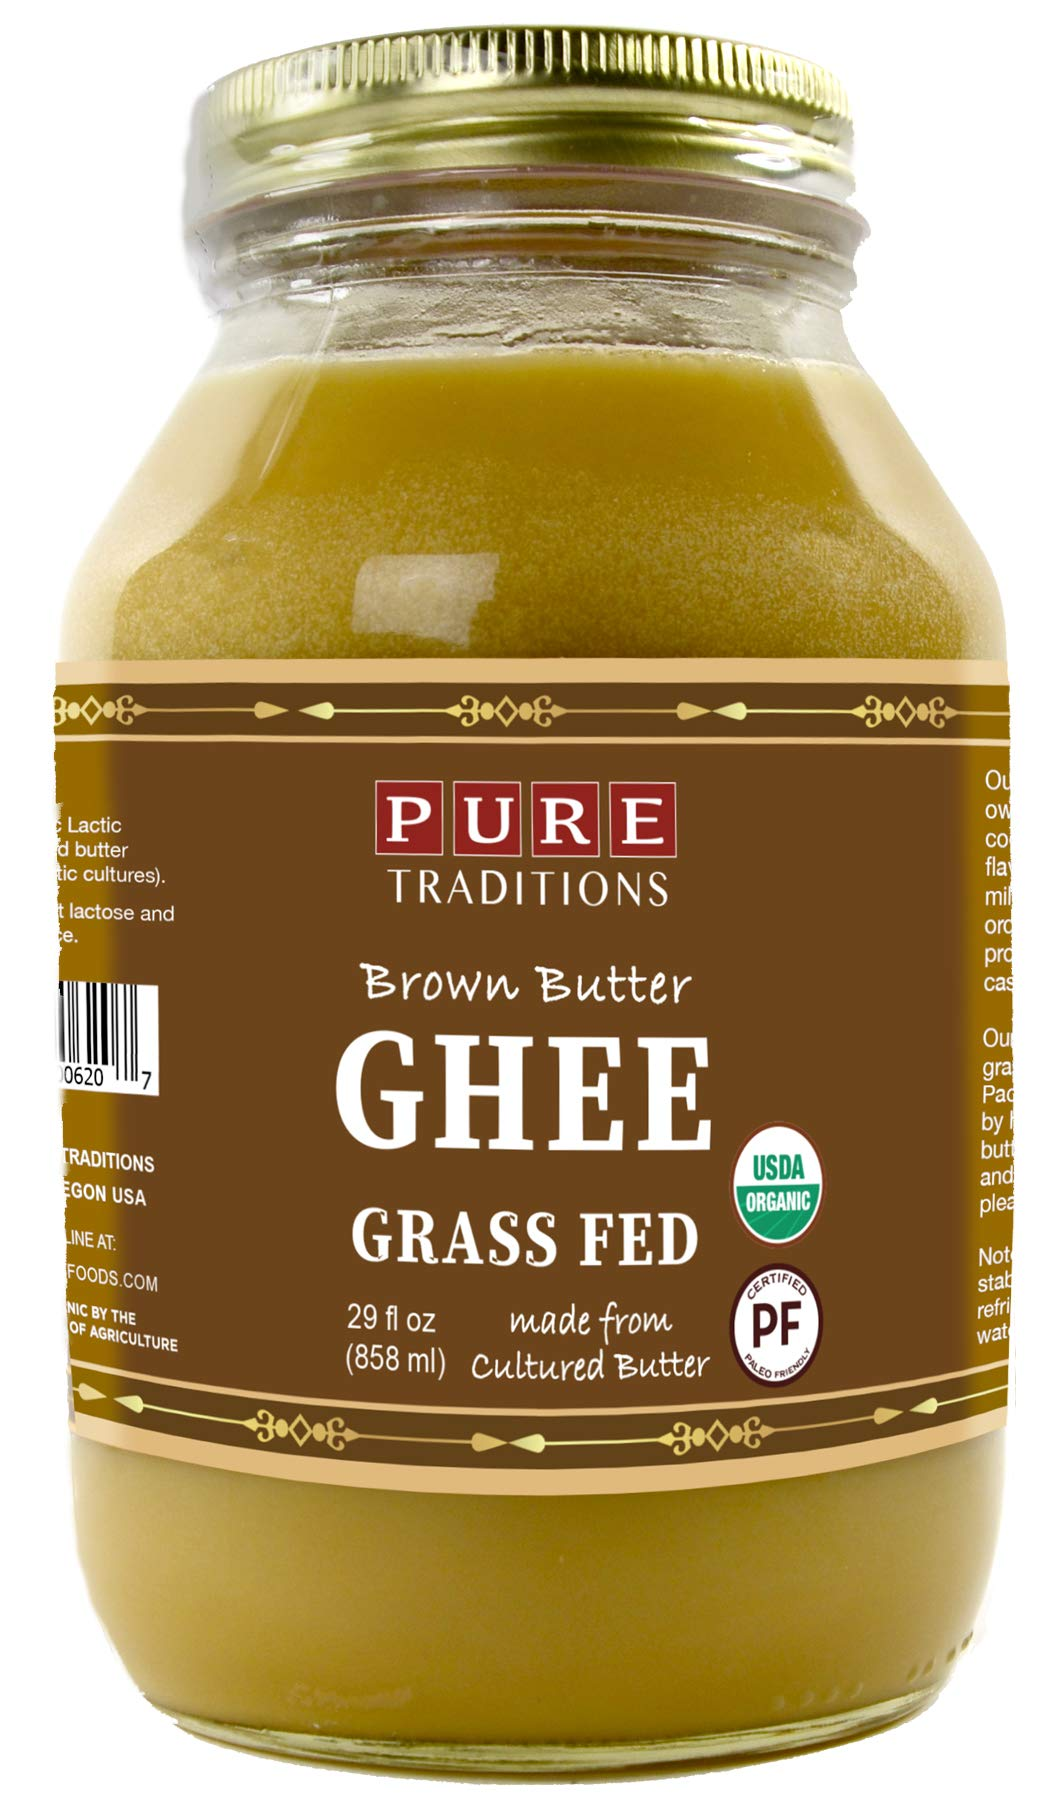 Organic Paleo Cultured Brown Butter Ghee, Grass Fed, Casein and Lactose Free (29 oz) by Pure Traditions (Image #1)